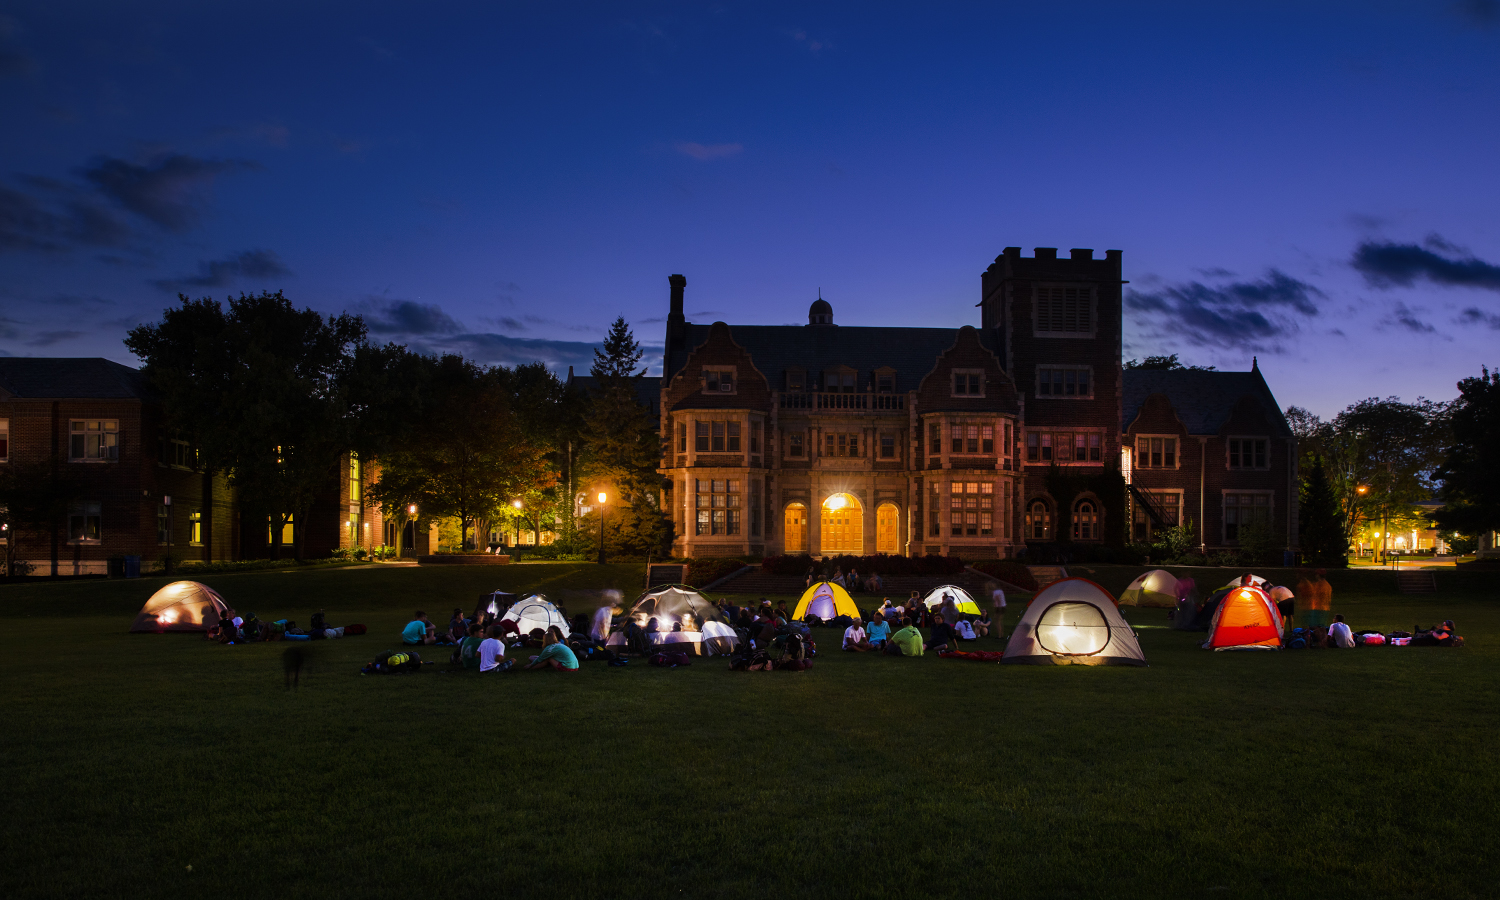 Tent lights illuminate the Quad during a Pre-Orientation Adventure Program campout on campus.